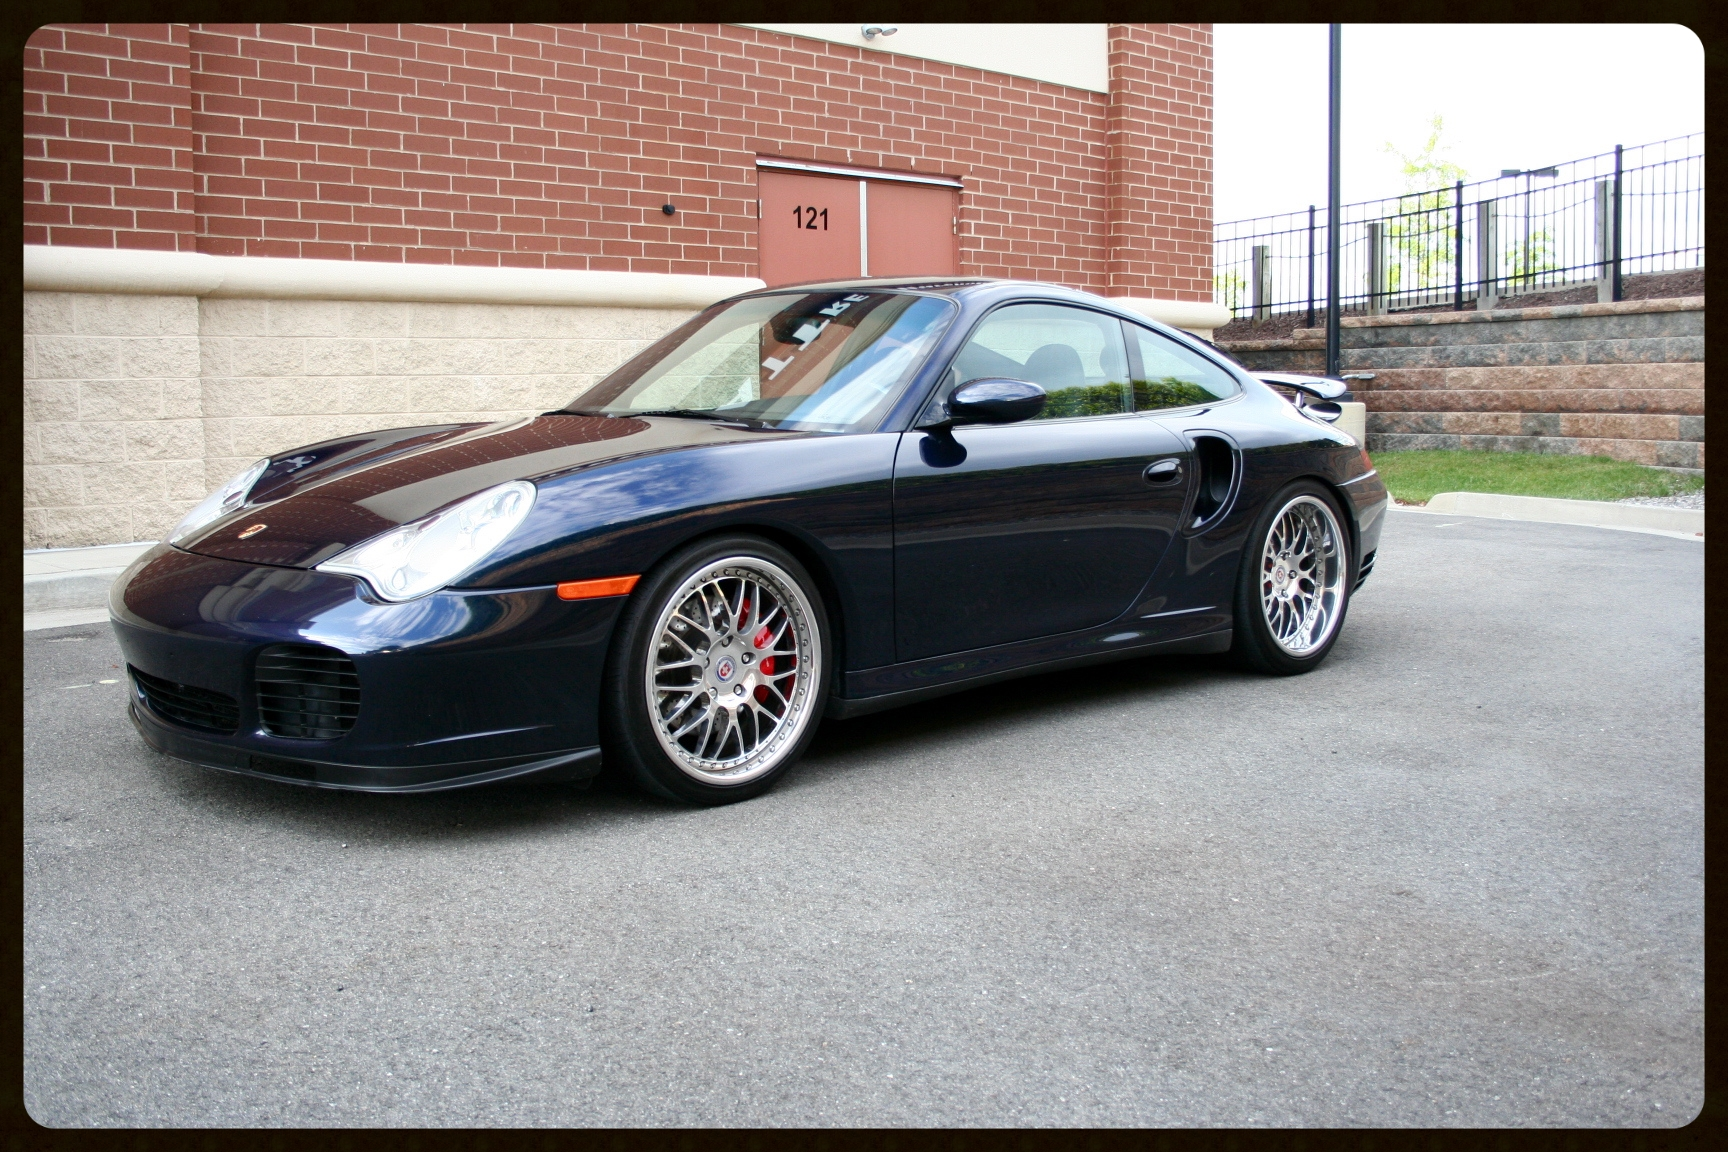 2004 911 Turbo. HRE Wheels, Fabspeed Exhaust, K24 Turbos, GIAC Tuned, Coilover Suspension and Much More. Click to View More Photos